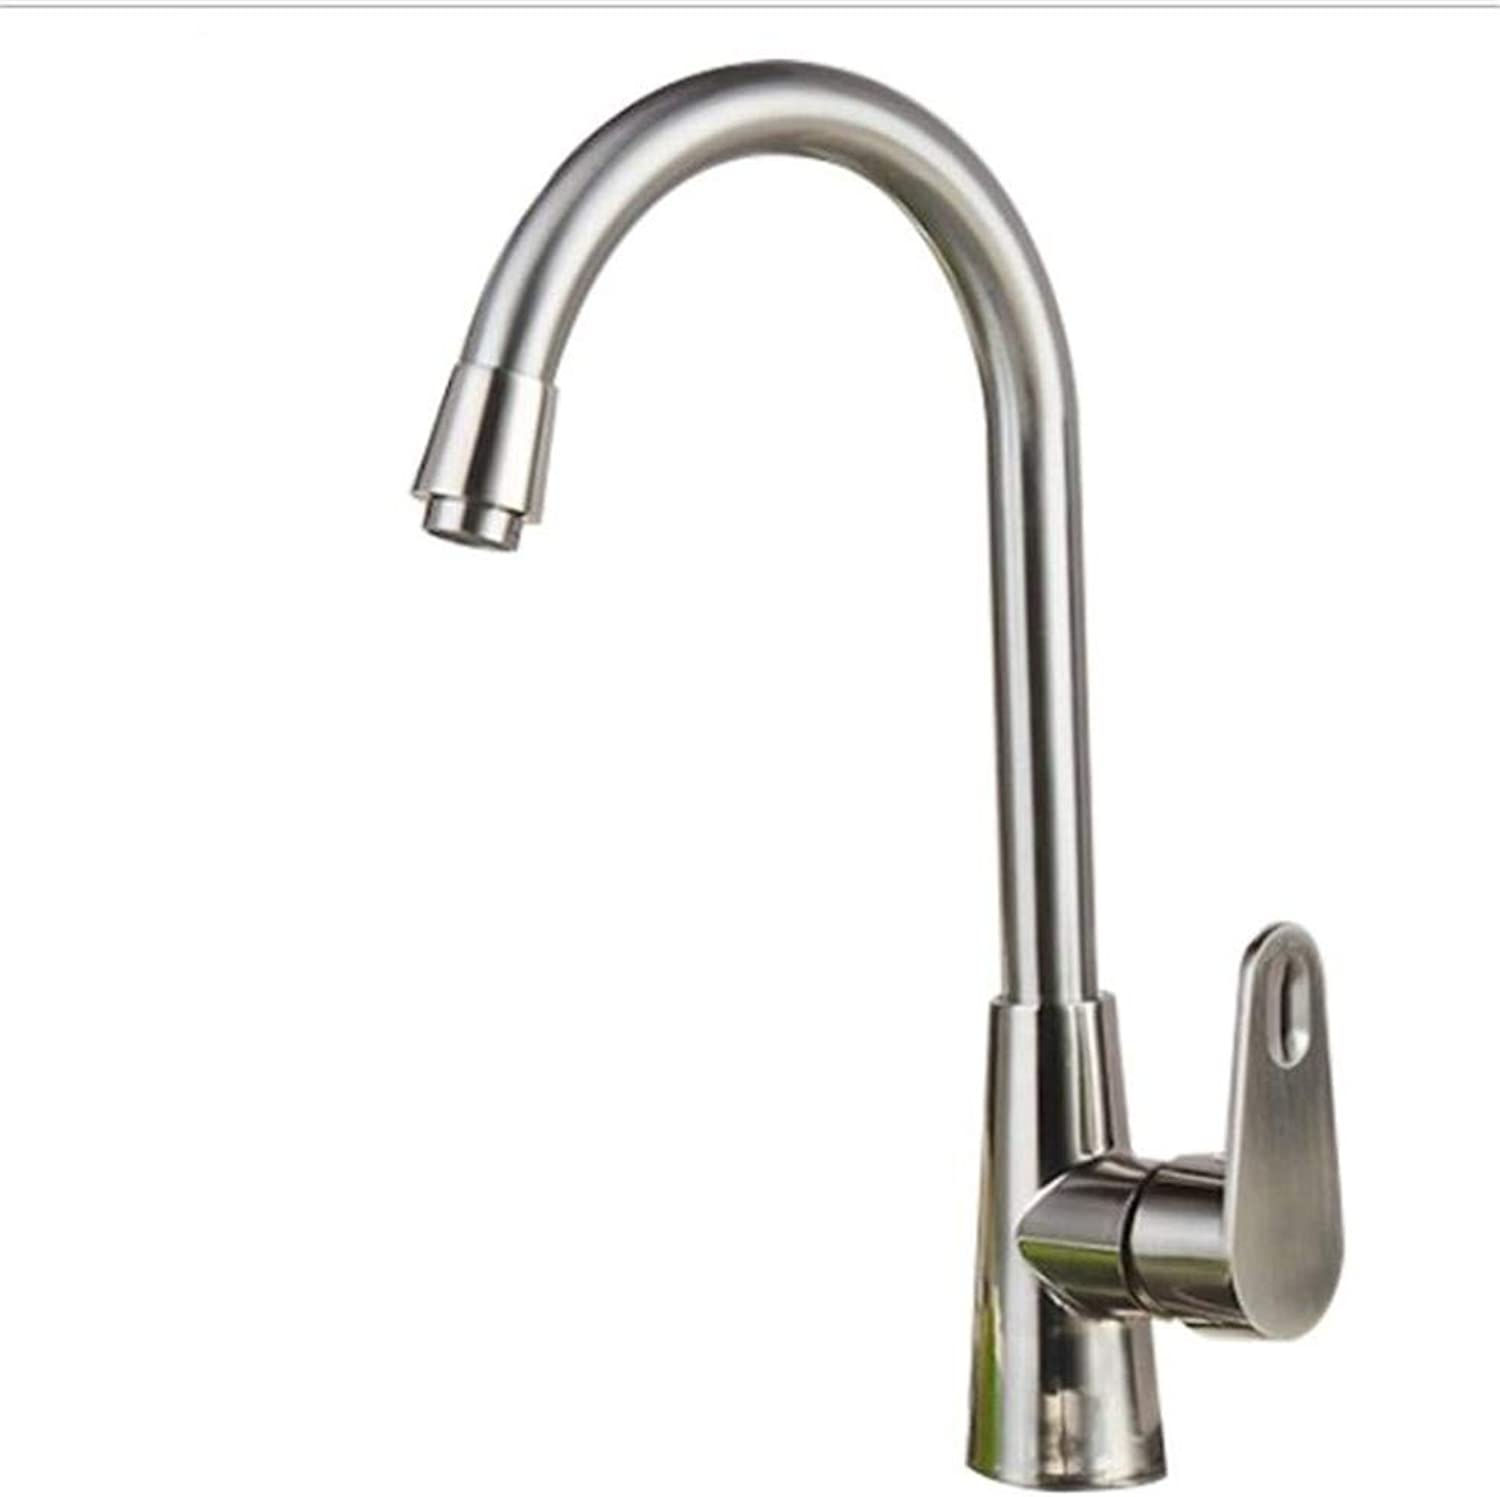 Bathroom Sink Basin Lever Mixer Tap Bathroom, Brushed, Copper, Goddess, Hot and Cold, Vegetable Basin, Mixed Water, Faucet